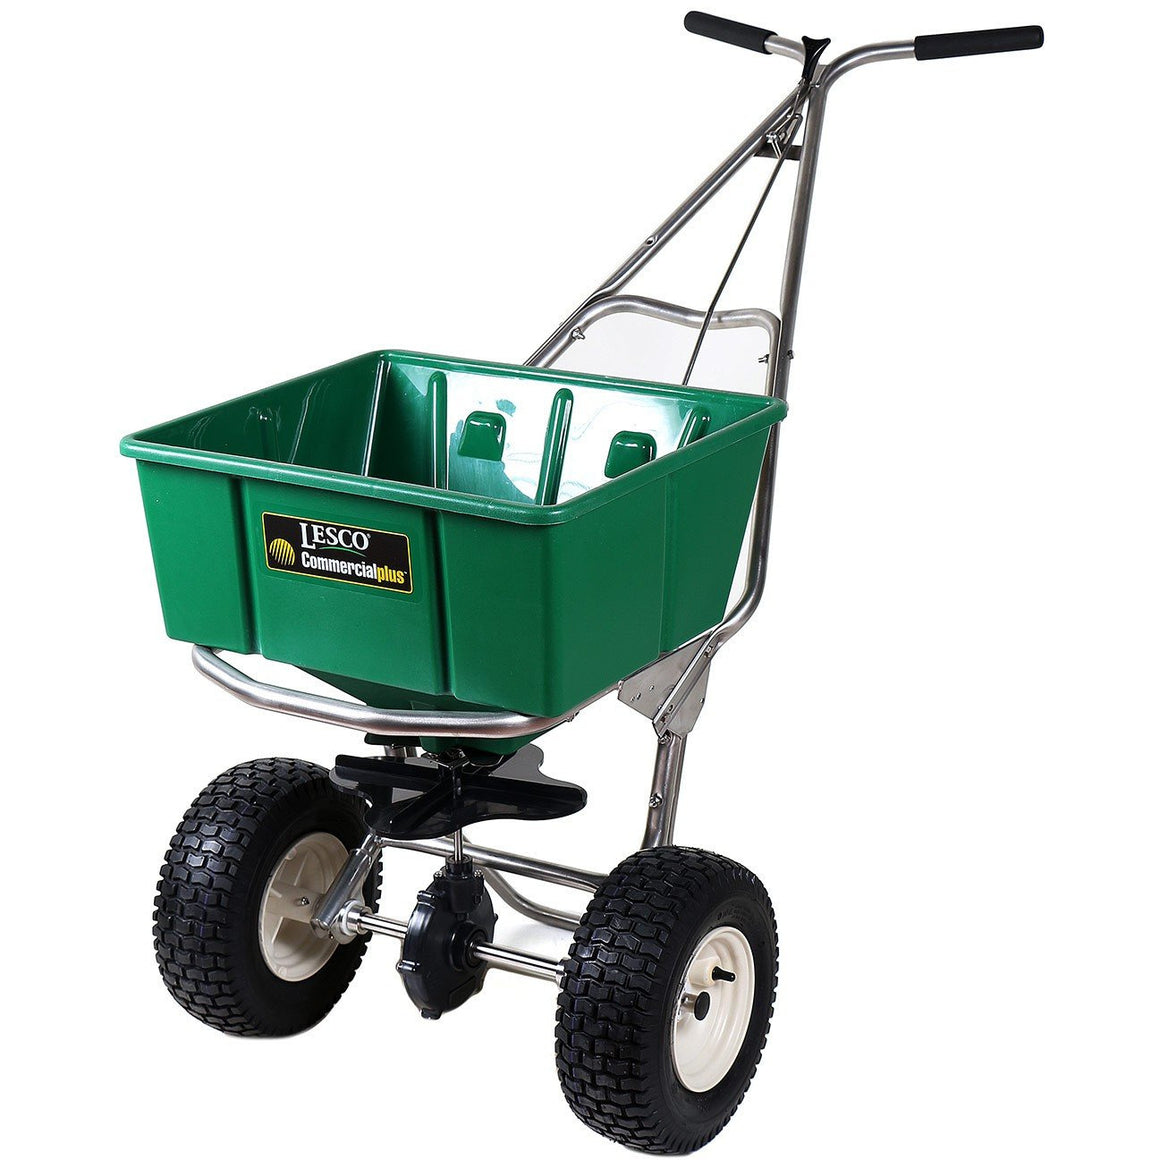 Lesco Stainless Steel Ice Melt Spreader - 80 Lbs. Hopper 102821